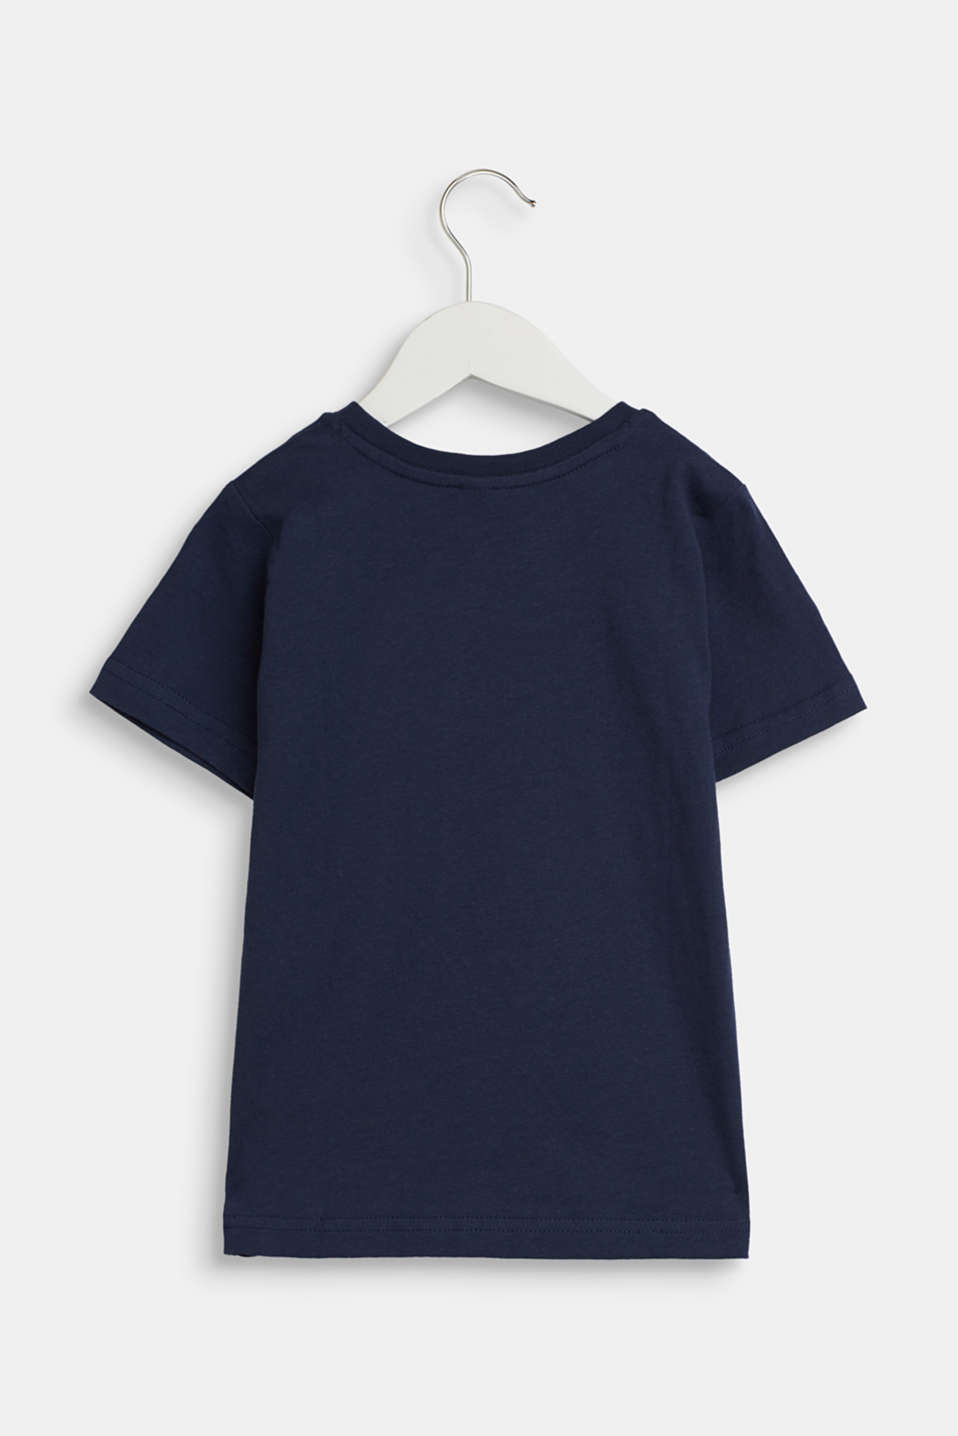 T-shirt with a logo print, in jersey, NAVY, detail image number 1